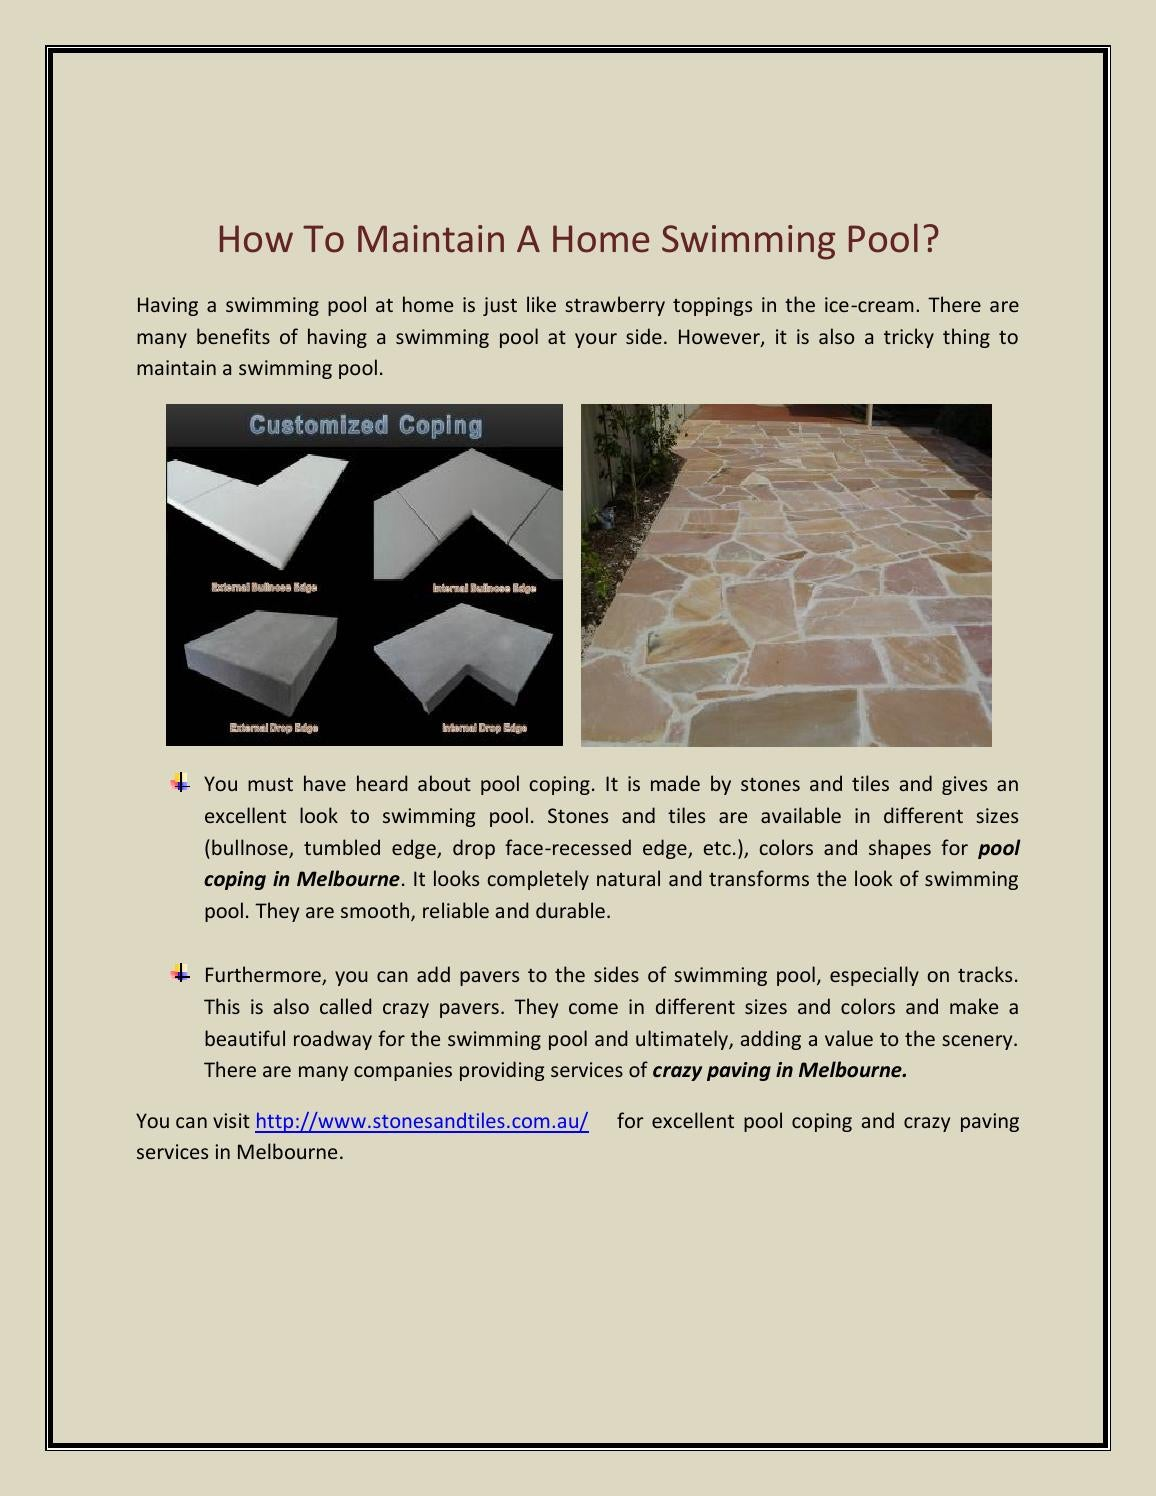 Pool coping in melbourne how to maintain a home swimming ...